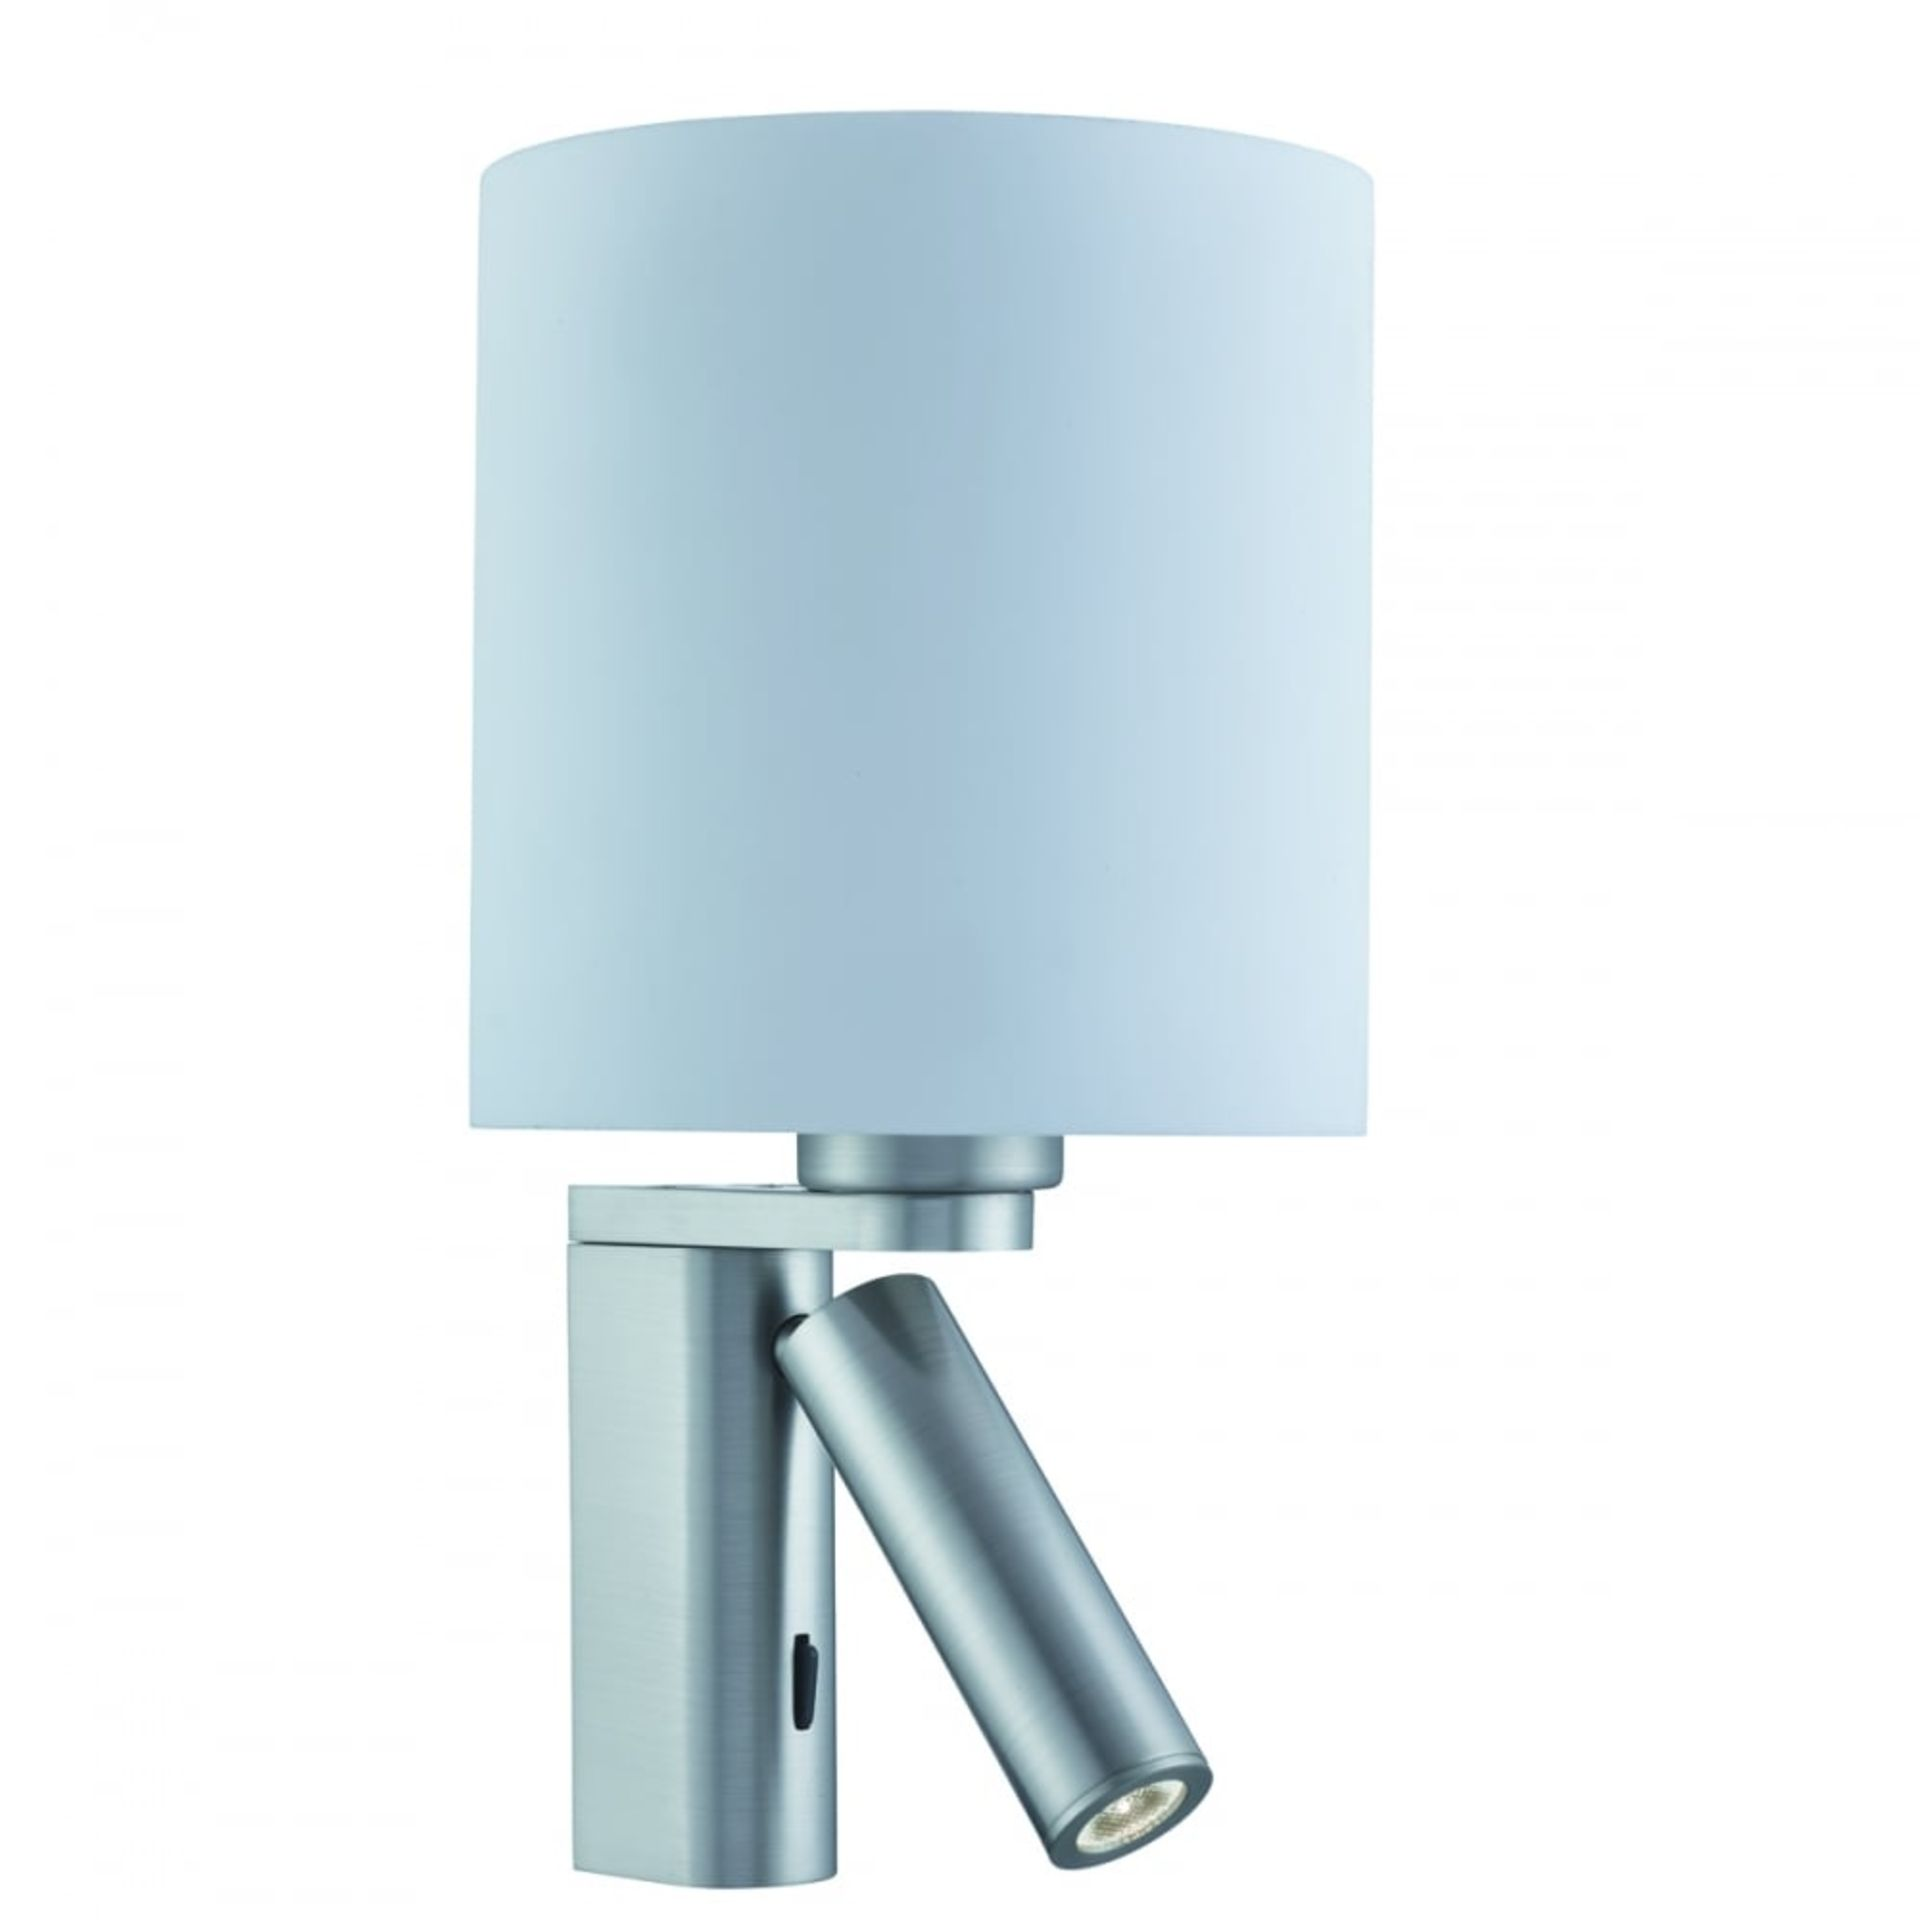 Lot 9046 - 2 x Searchlight LED Switched Wall Lights With Room Light, Reading Light, Glass Shade and Satin